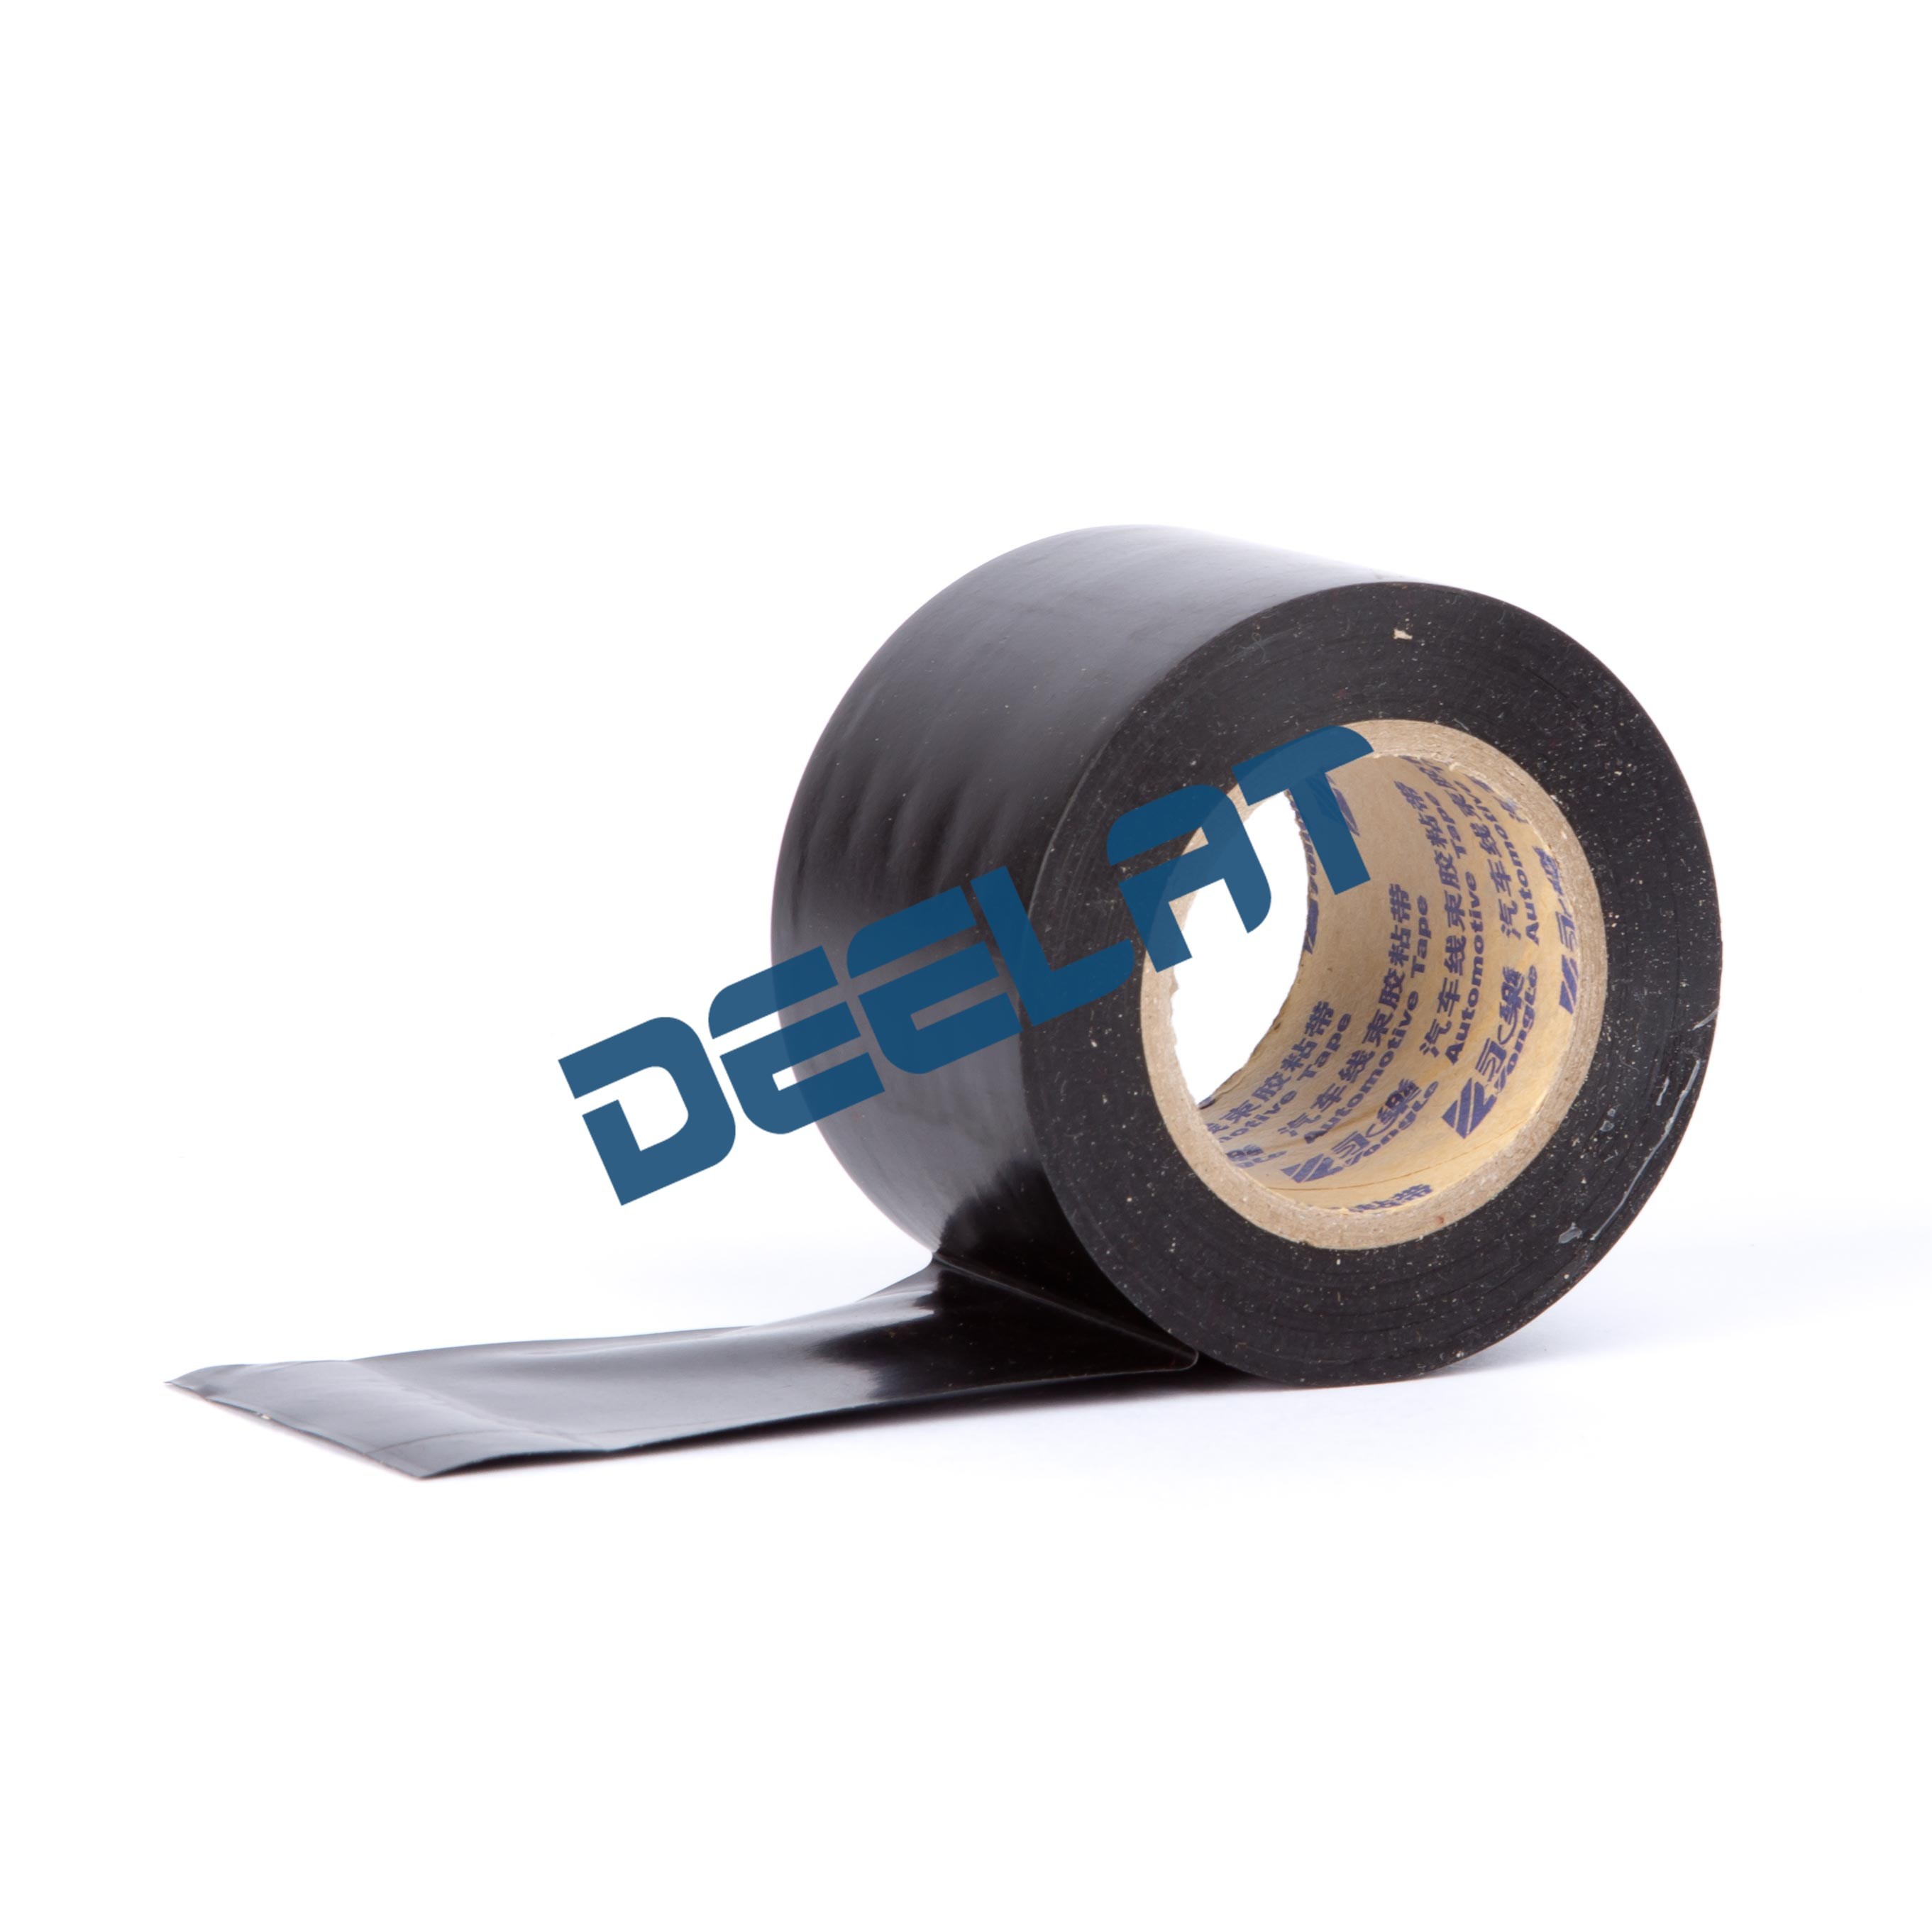 Automotive wire harness wrapping tape free